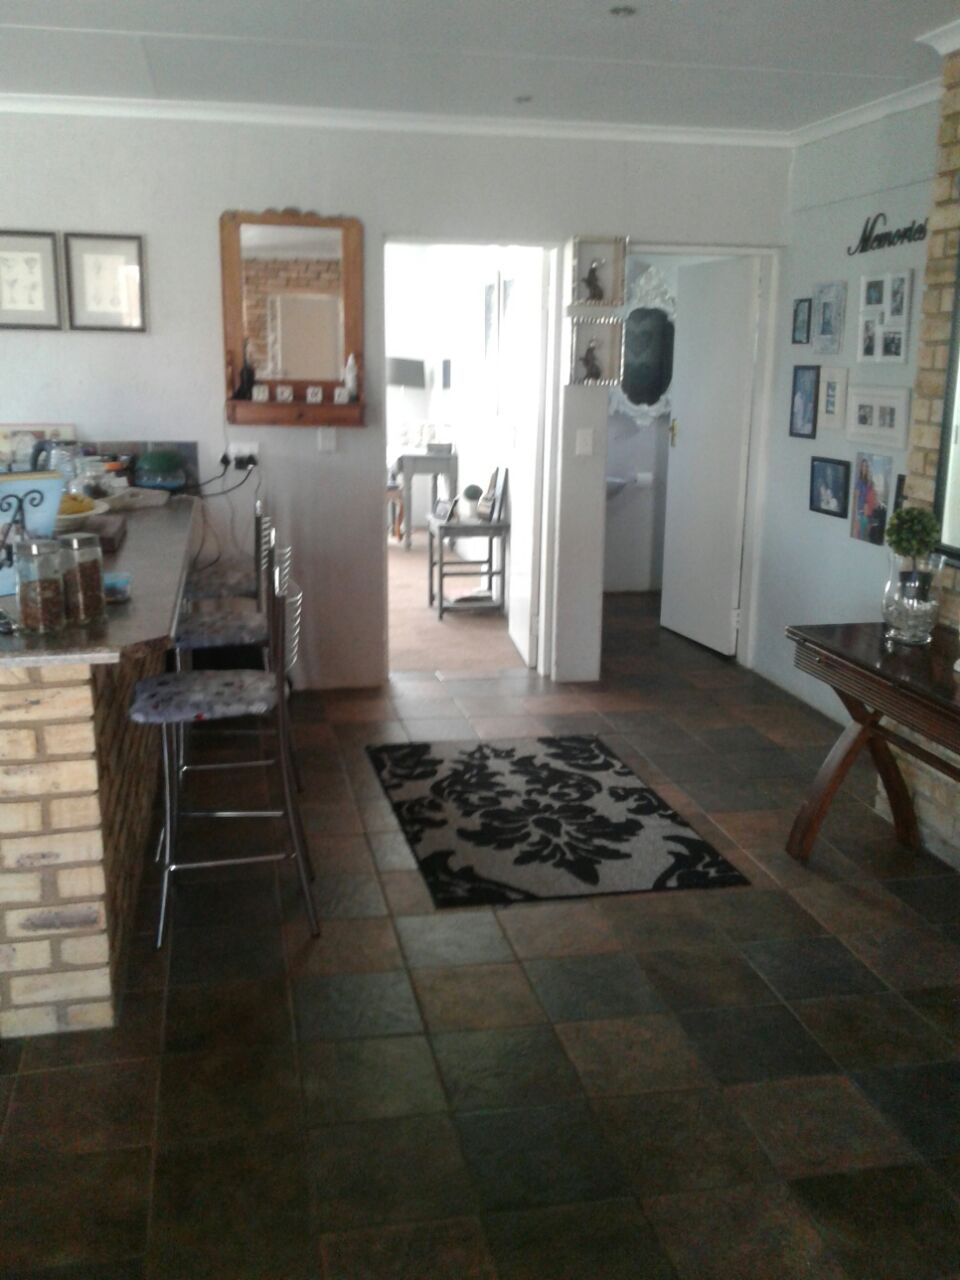 Krugersdorp. Beautiful. Spacious house to let. Only R 7500 per month.